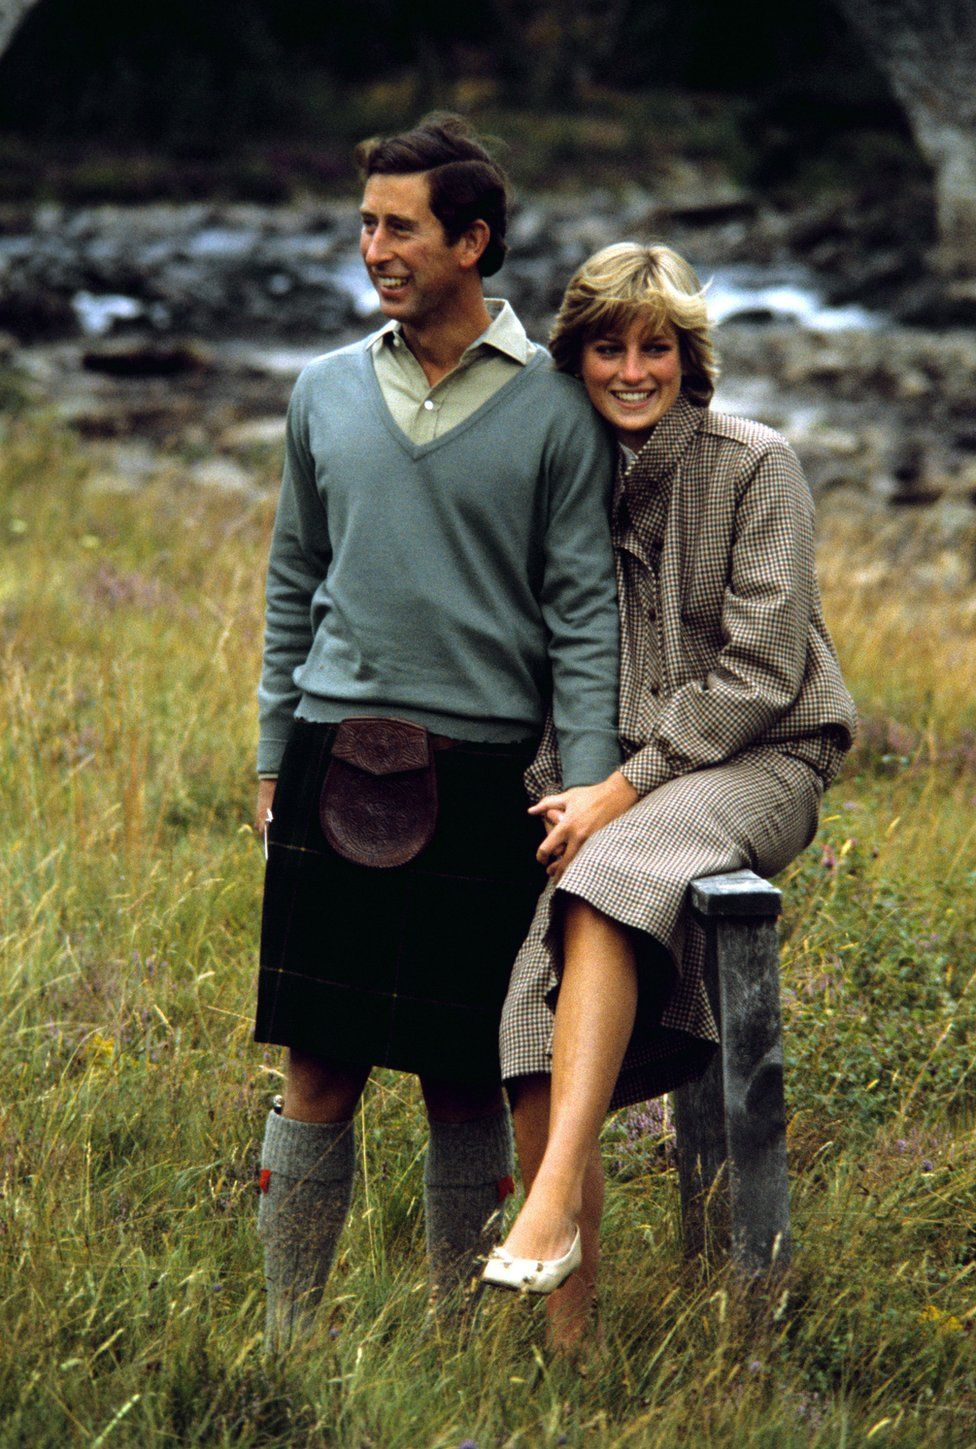 Charles and Diana sit together by the banks of a river